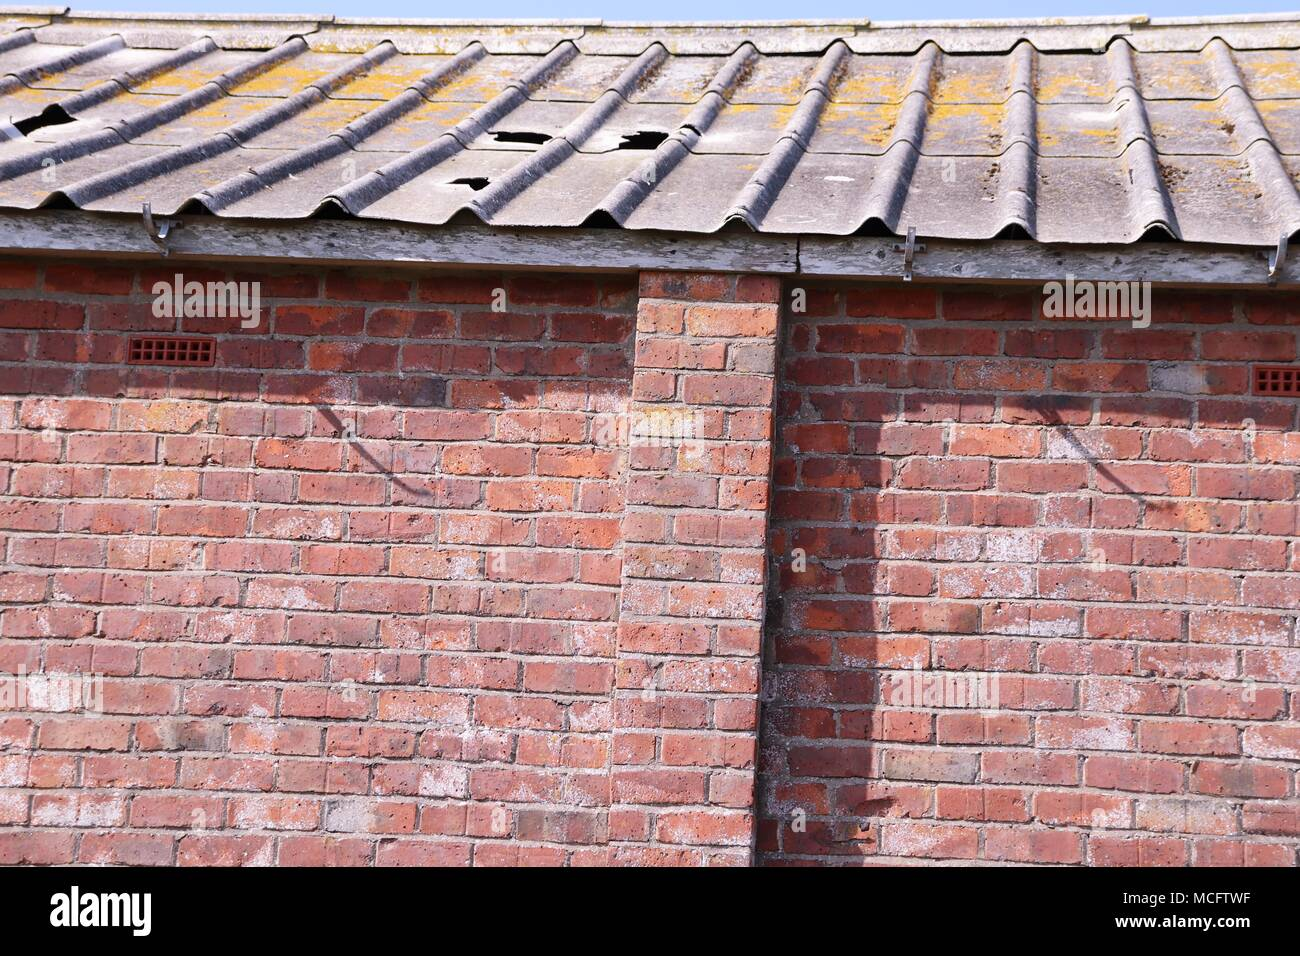 Brick wall texture, background - Stock Image